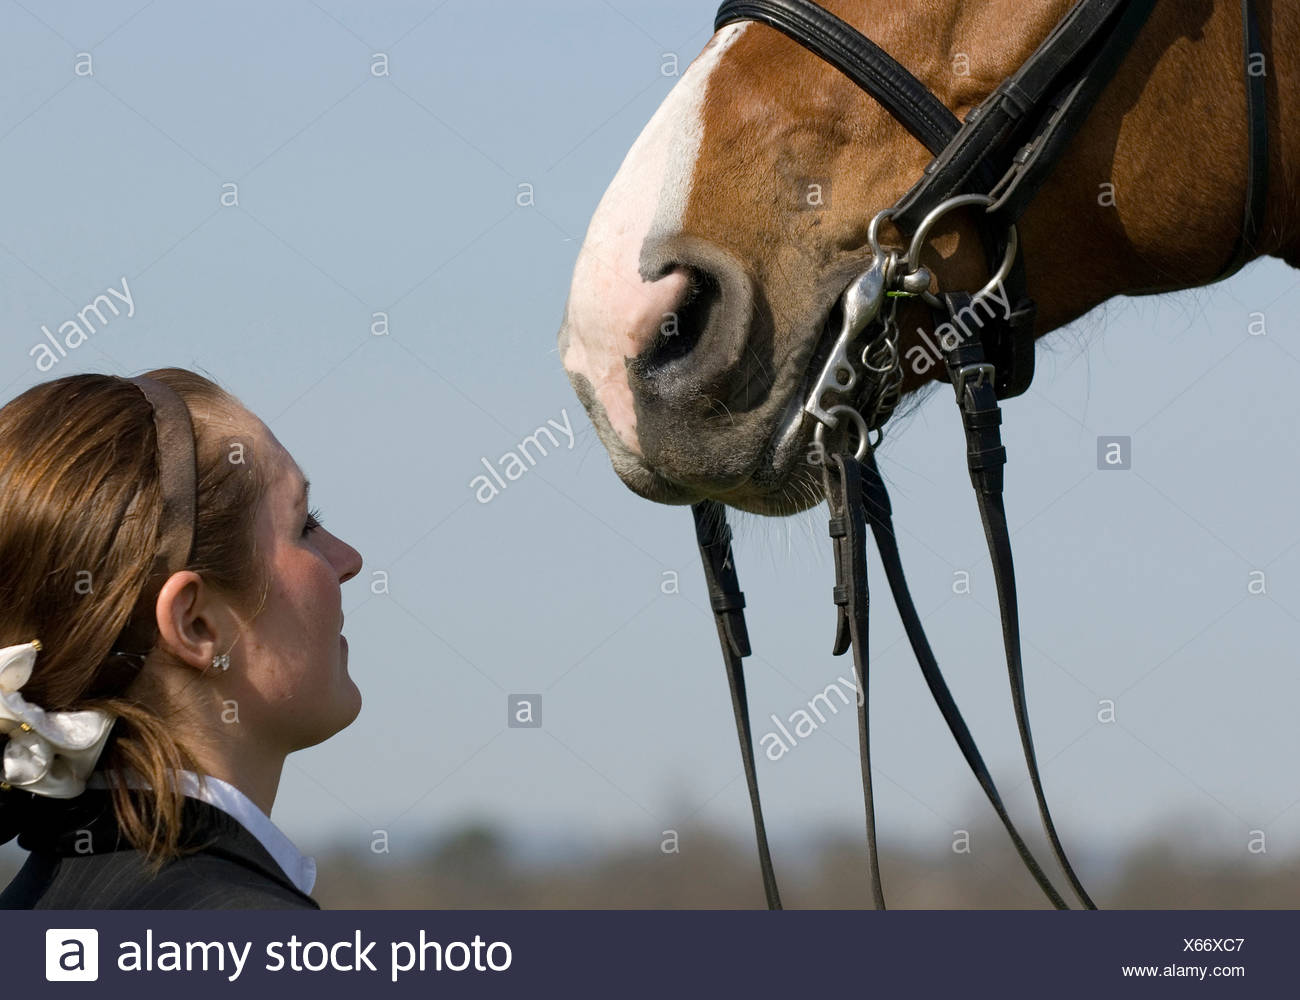 Horse Mouth Bits Stock Photos & Horse Mouth Bits Stock Images - Alamy